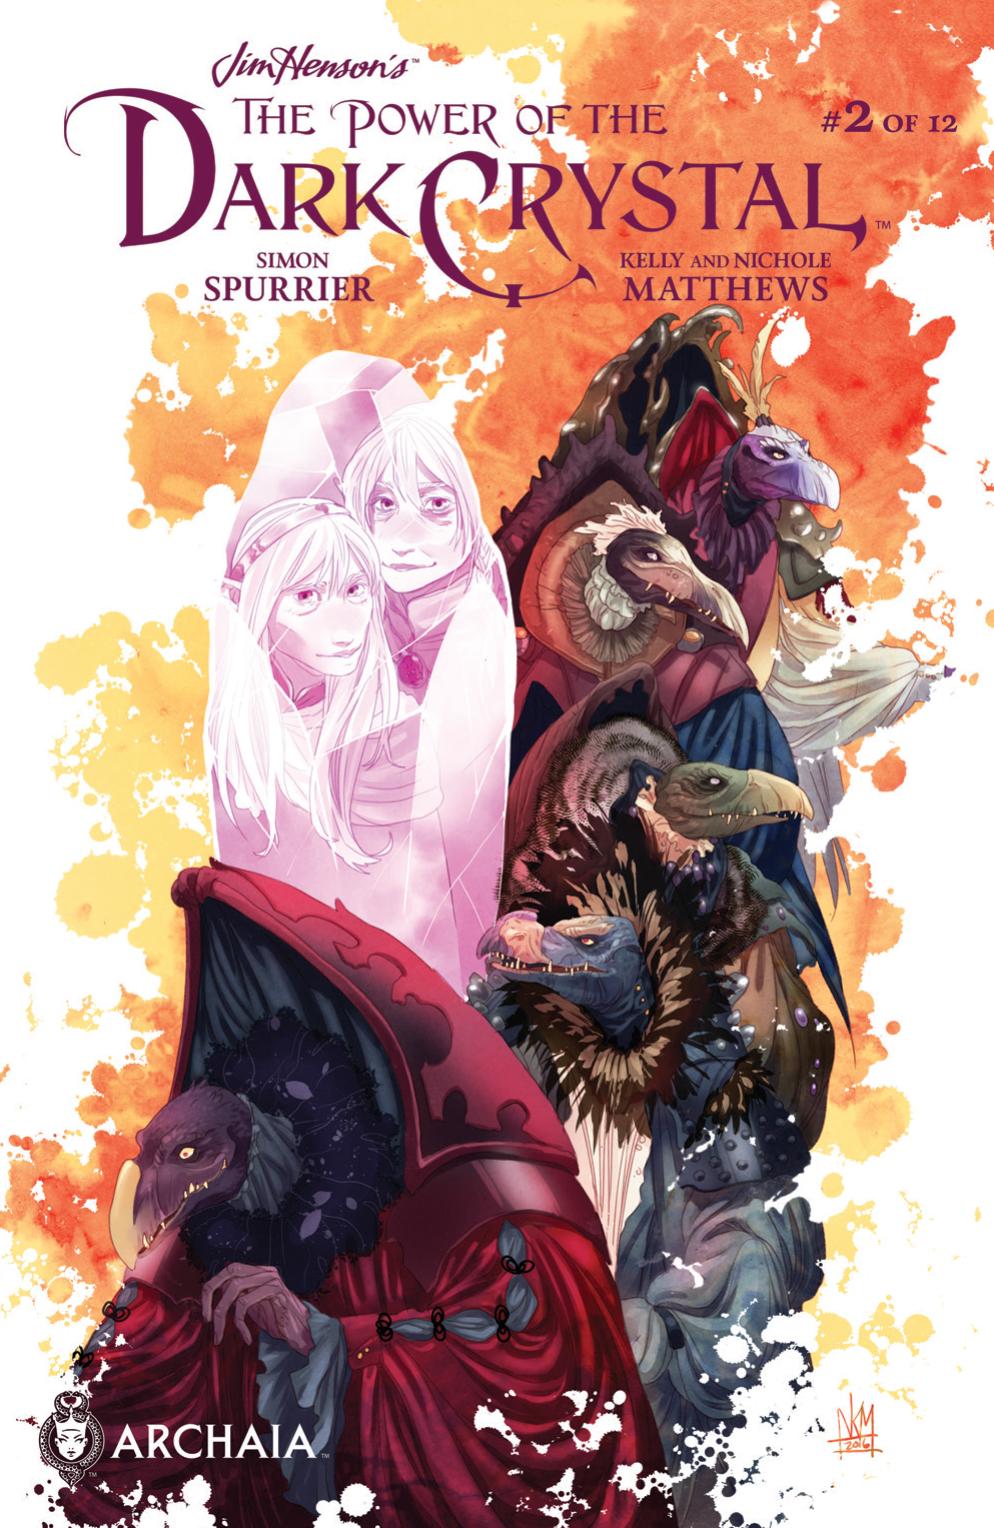 The Power of the Dark Crystal #2 Review